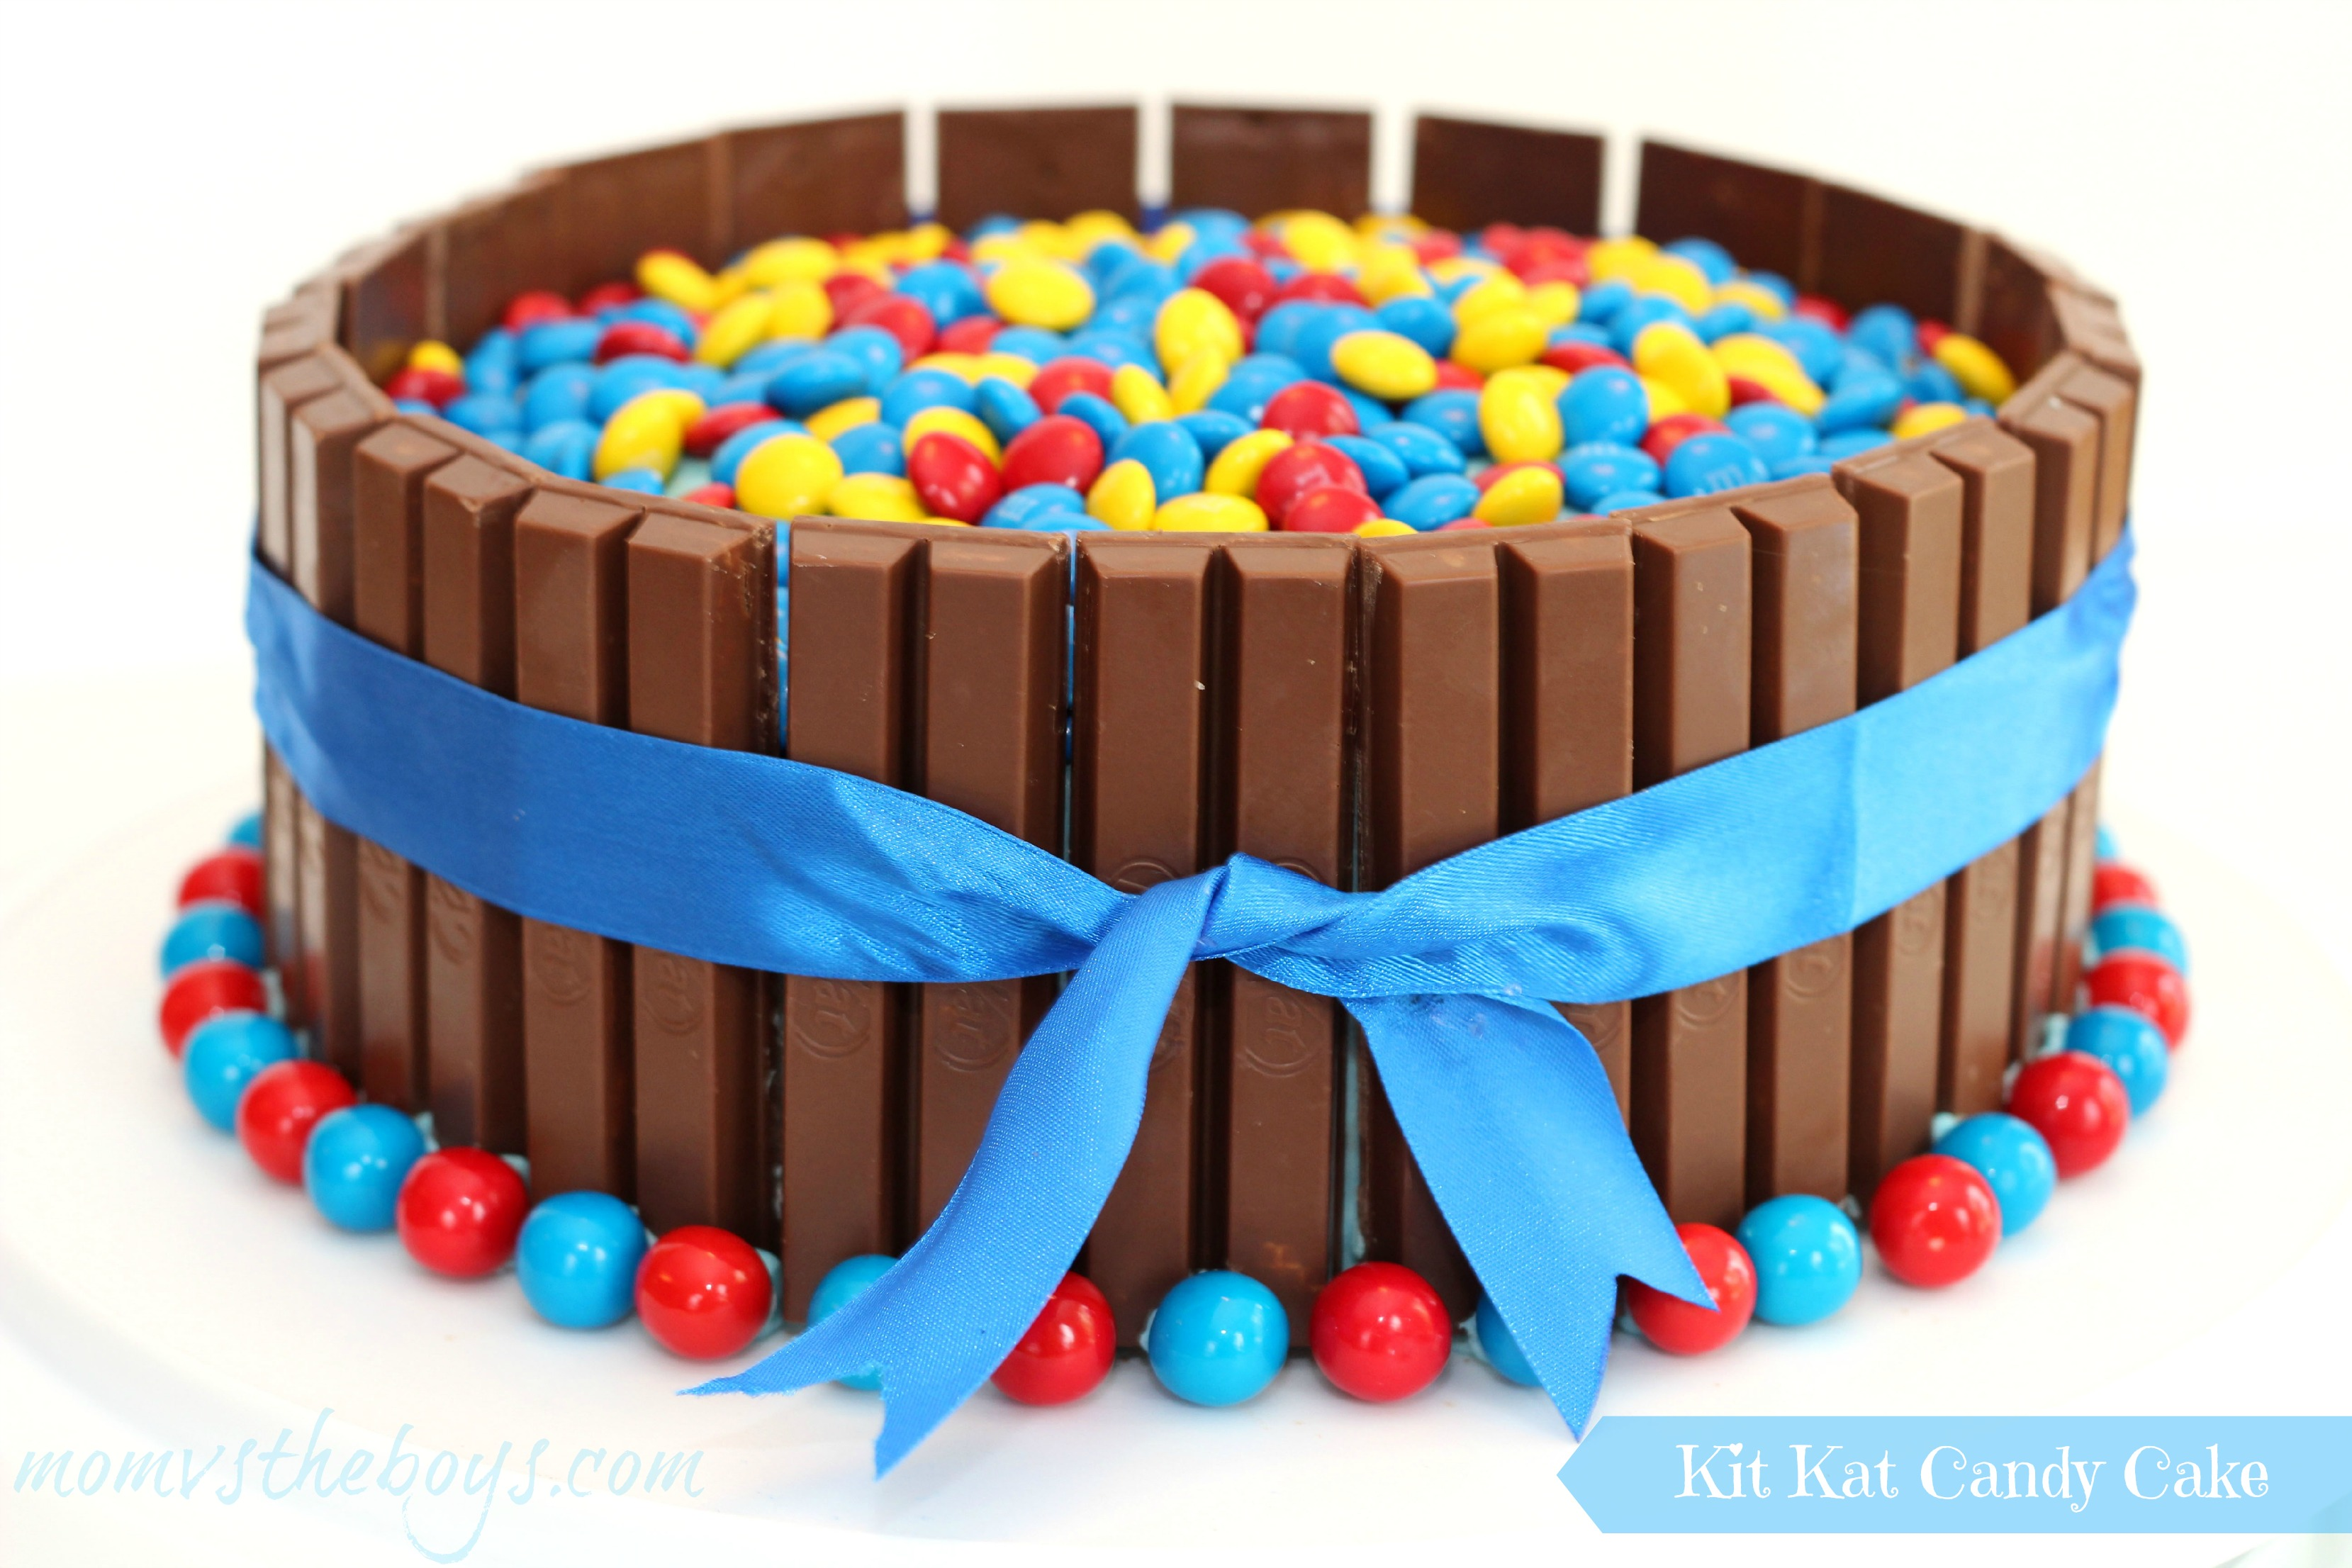 Cake Recipe With Kit Kat Bars